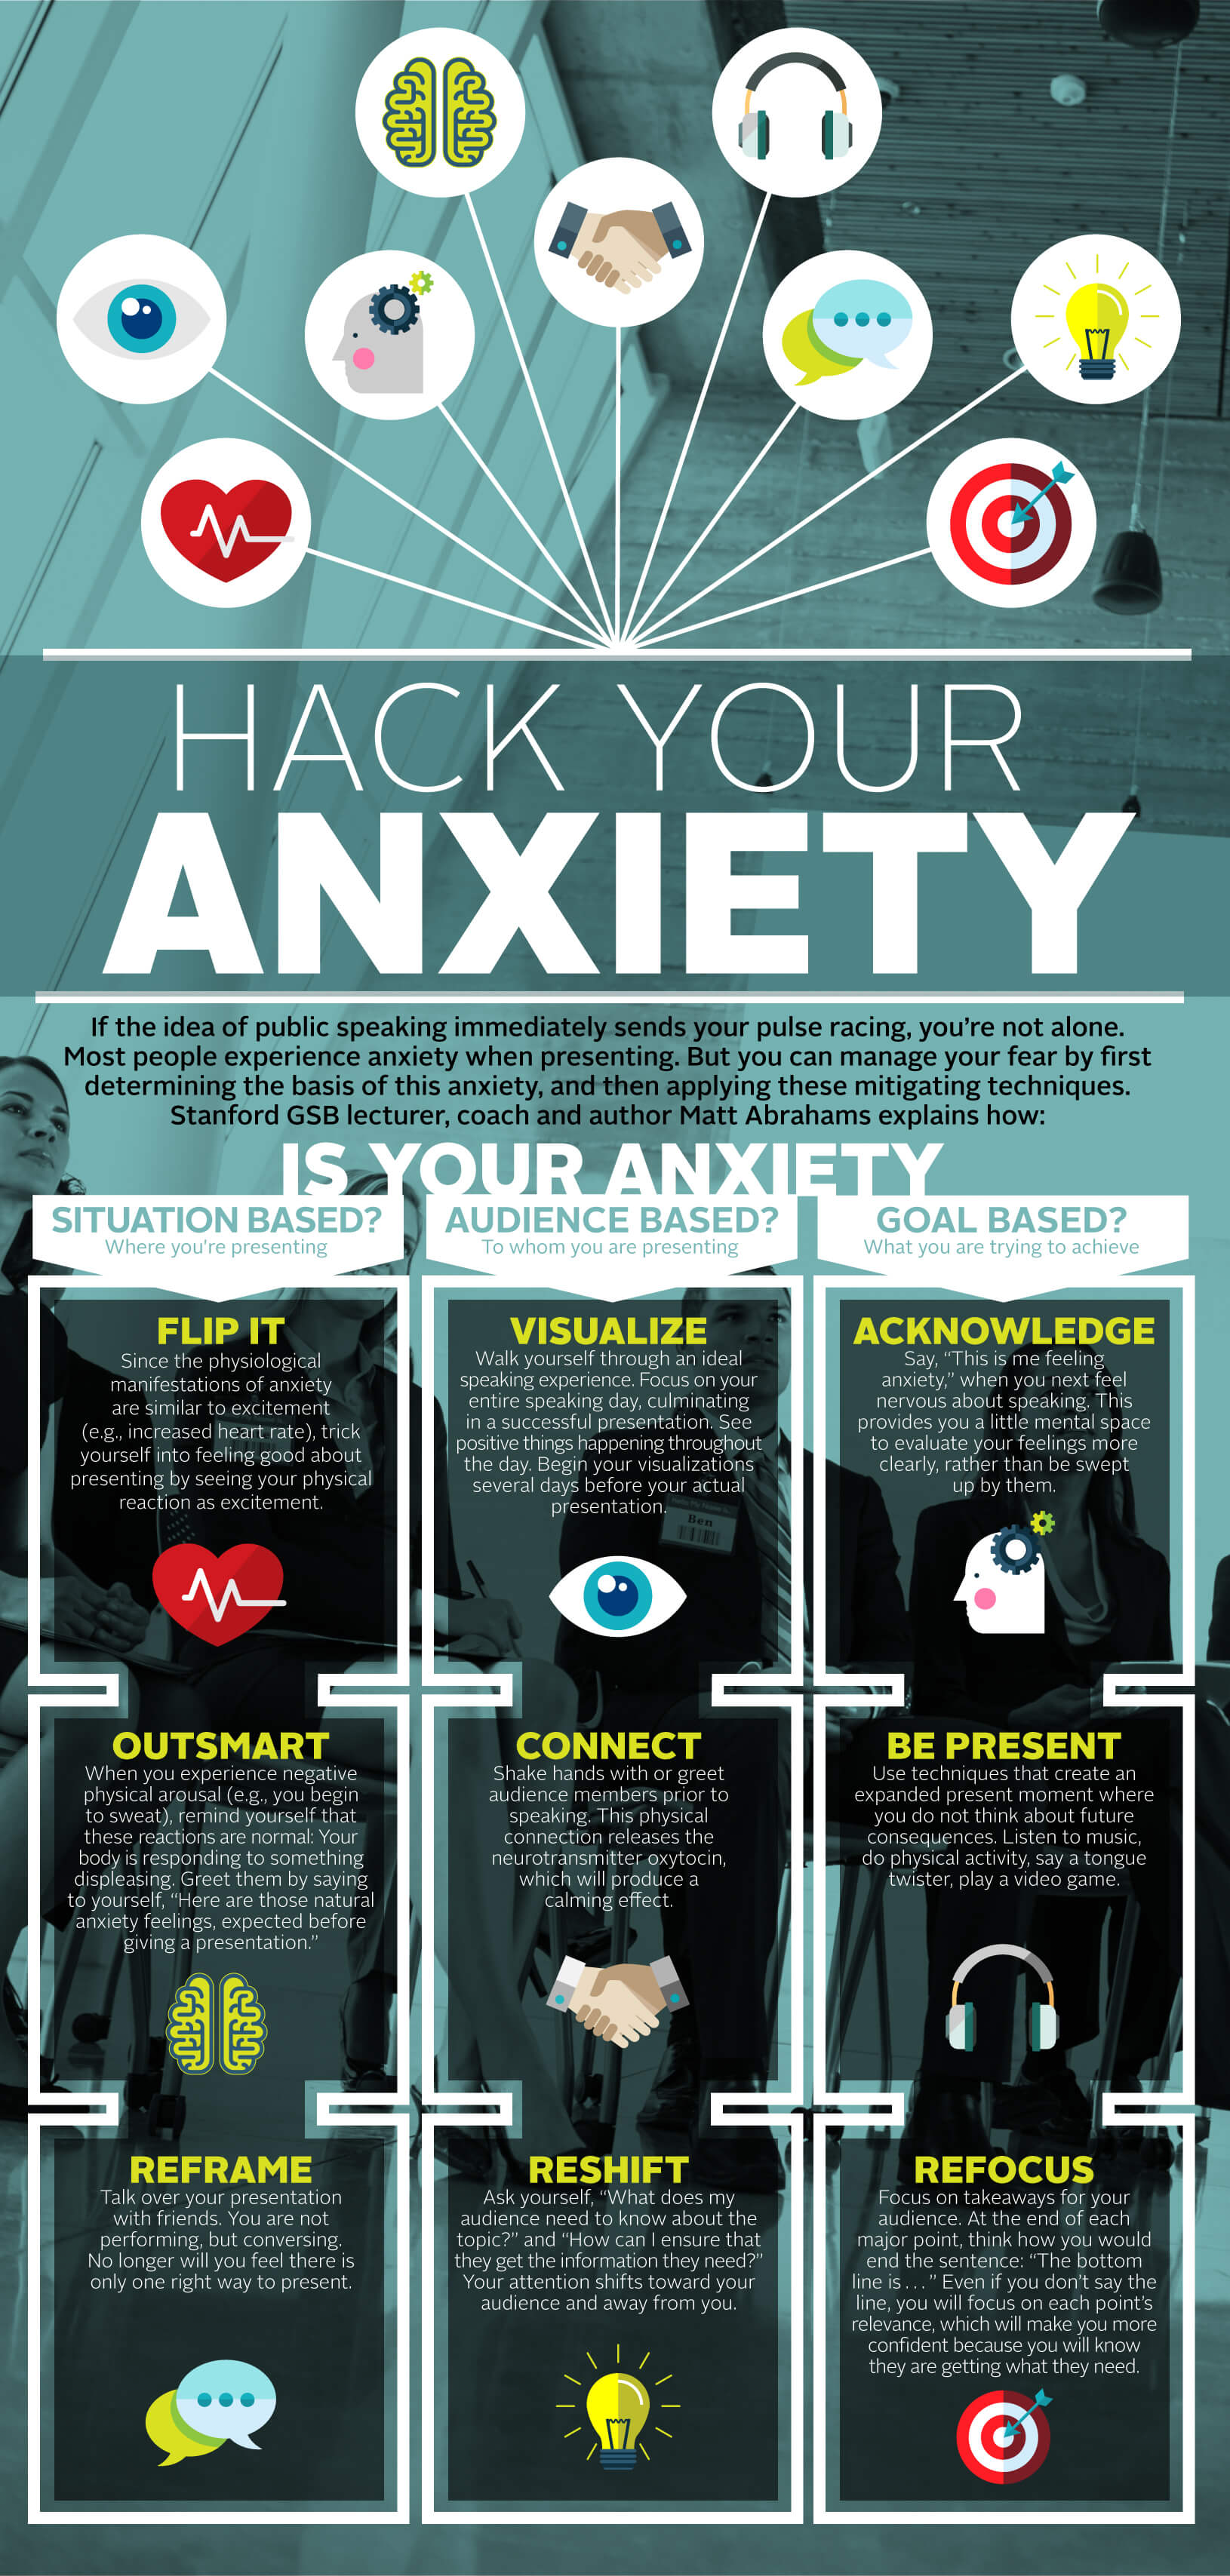 How To Manage Your Anxiety When Presenting